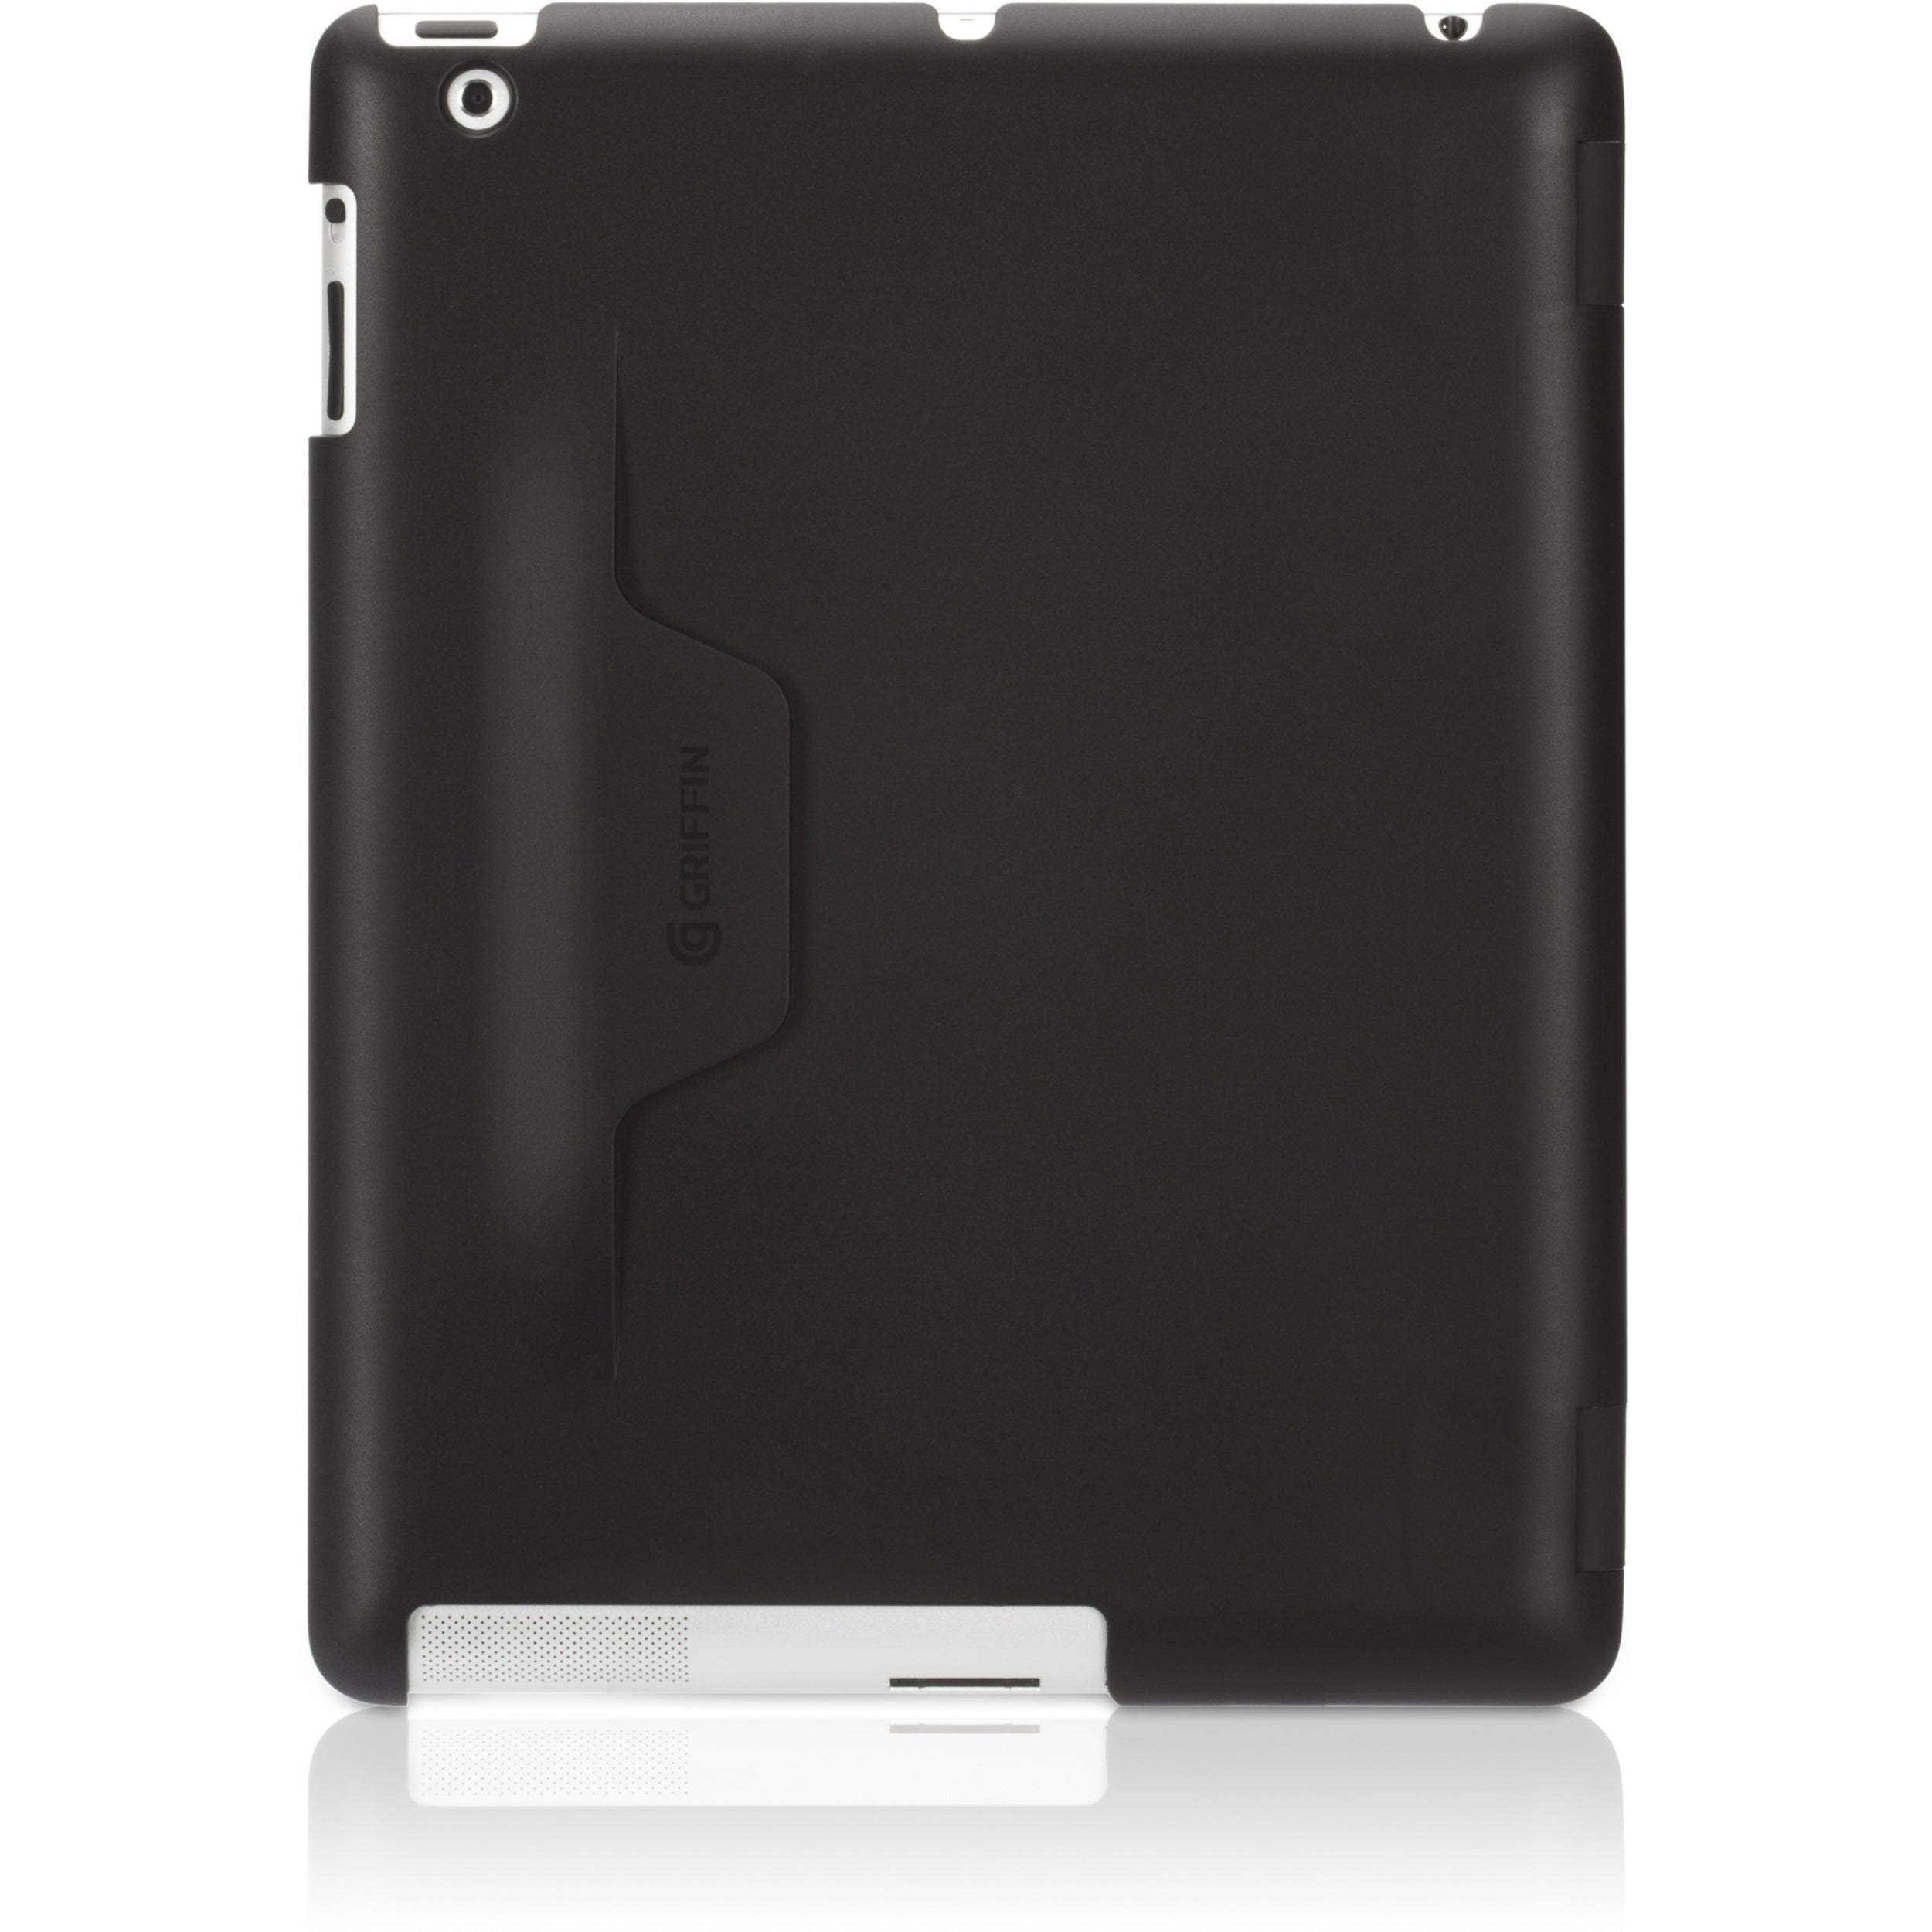 Griffin IntelliCase Carrying Case (Folio) for iPad - Black